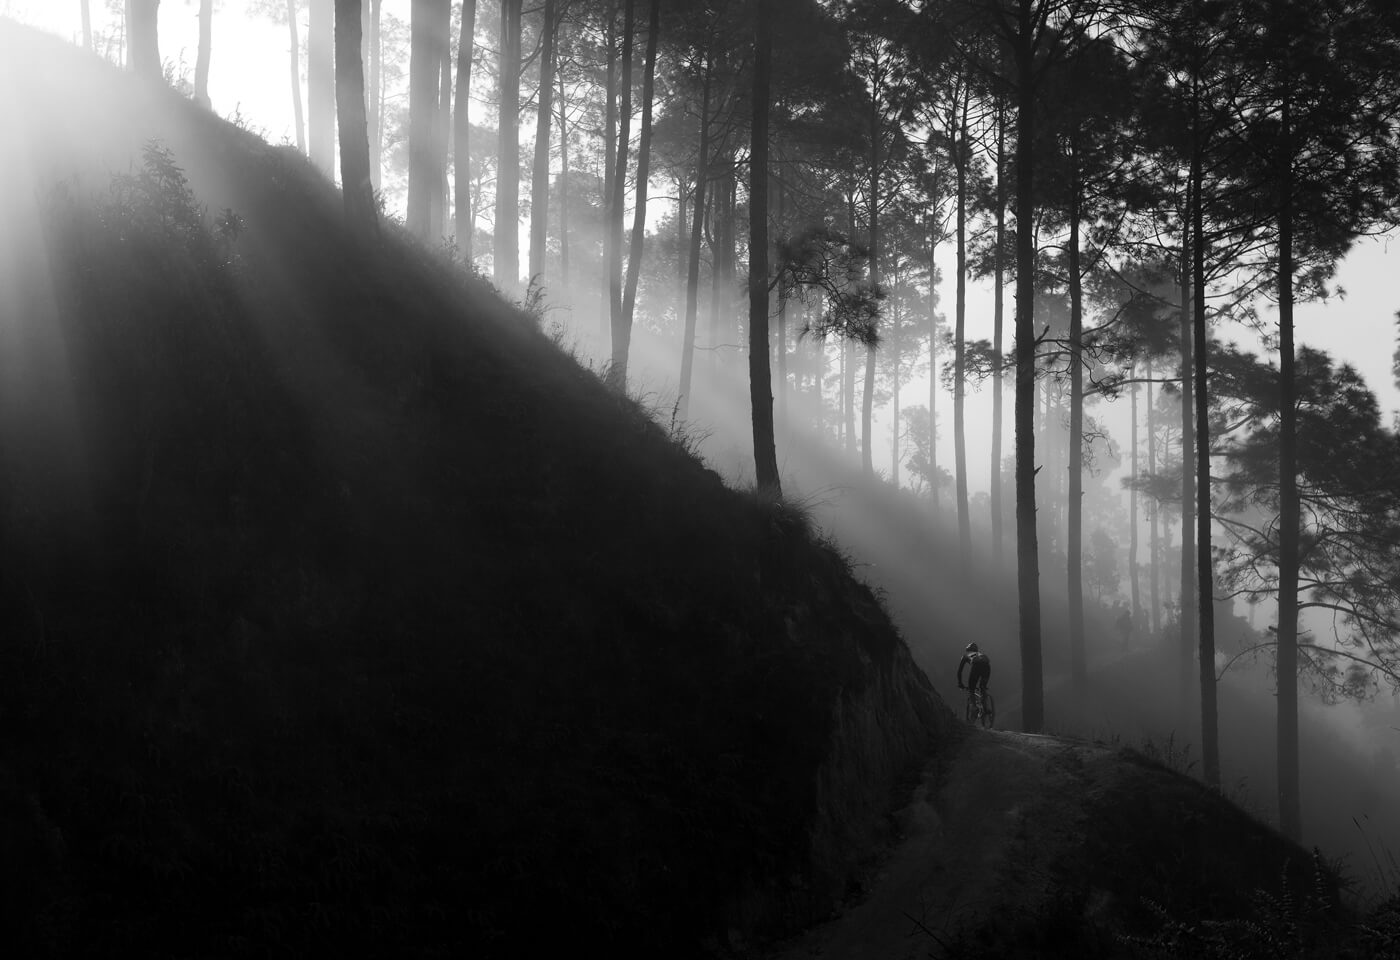 image of a forest in the outskirts of Kathmandu by Krystle Wright